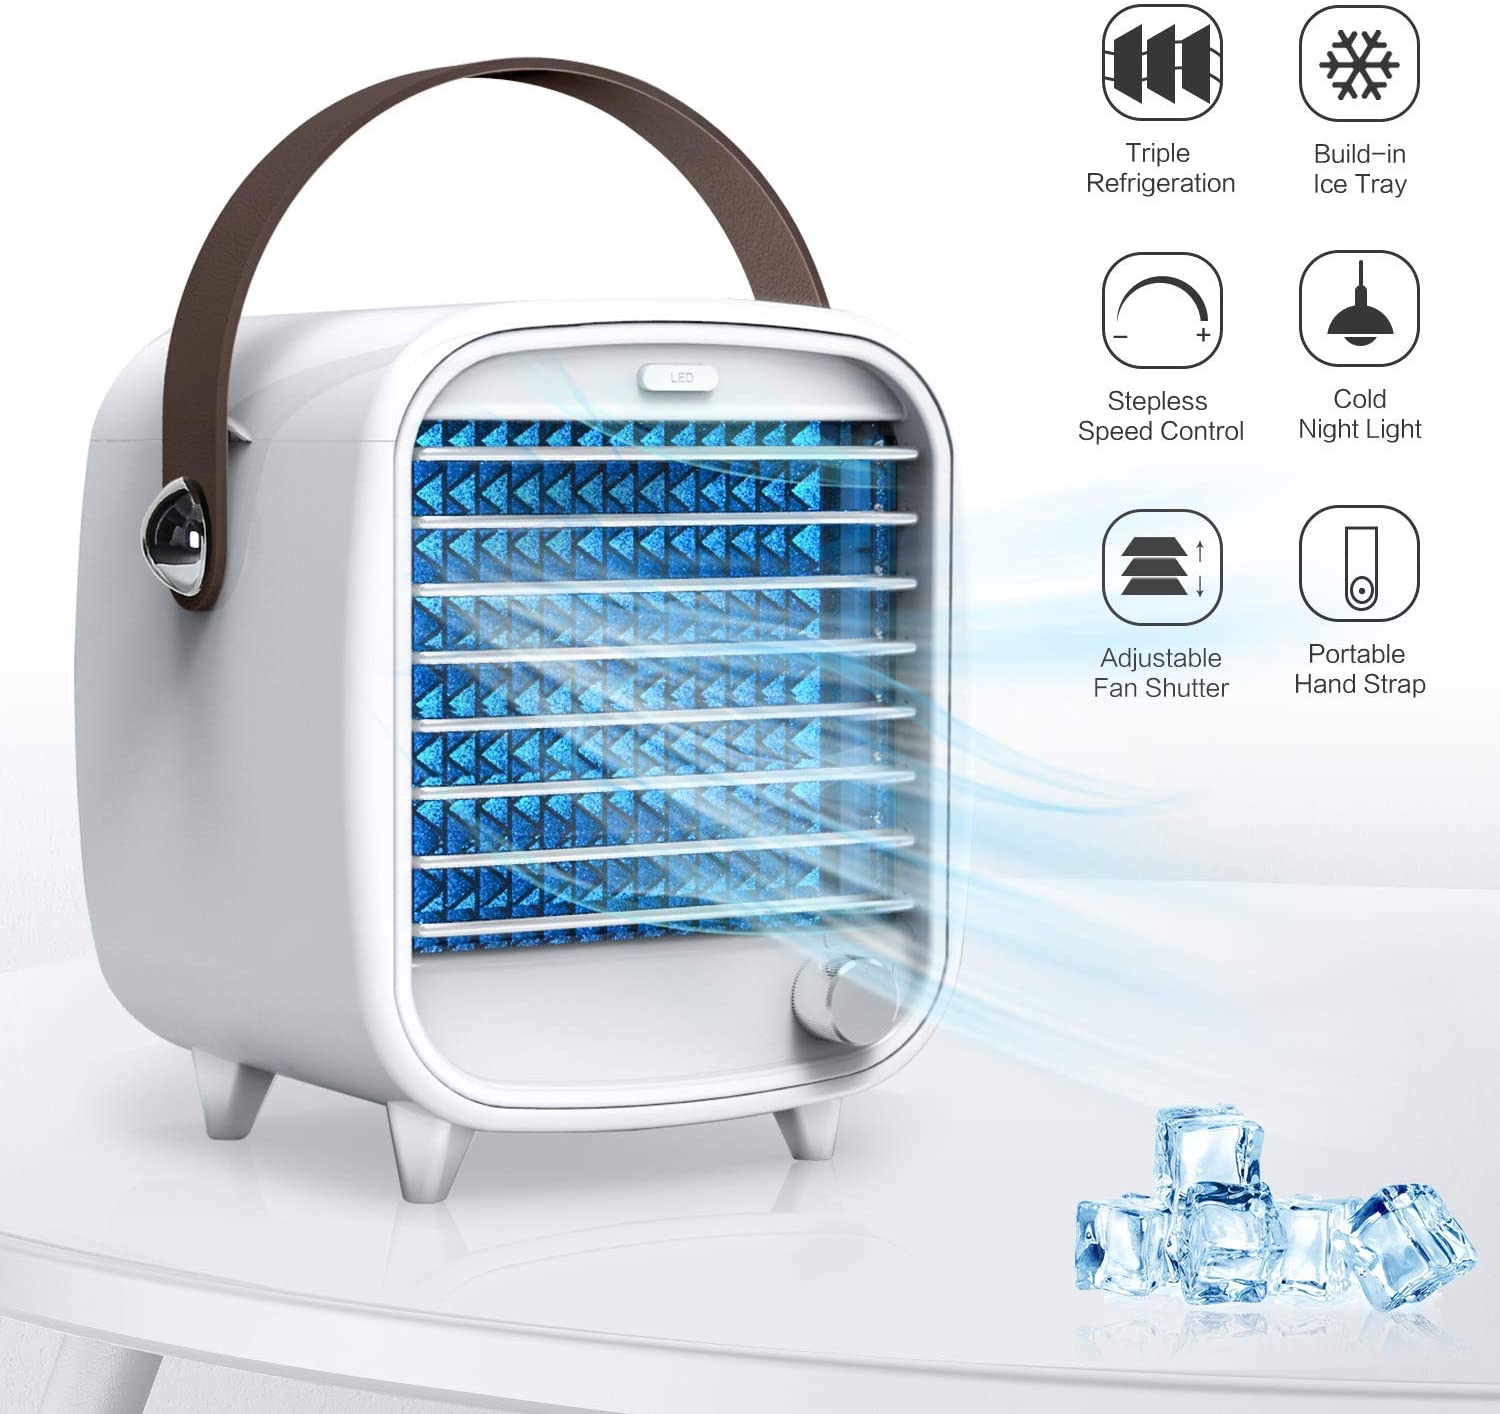 SMARTDEVIL Portable Air Conditioner Small <font><b>USB</b></font> Desktop Air Cooler Built-in Ice Box Cooling <font><b>Fan</b></font> Strong Wind Night Light Features image